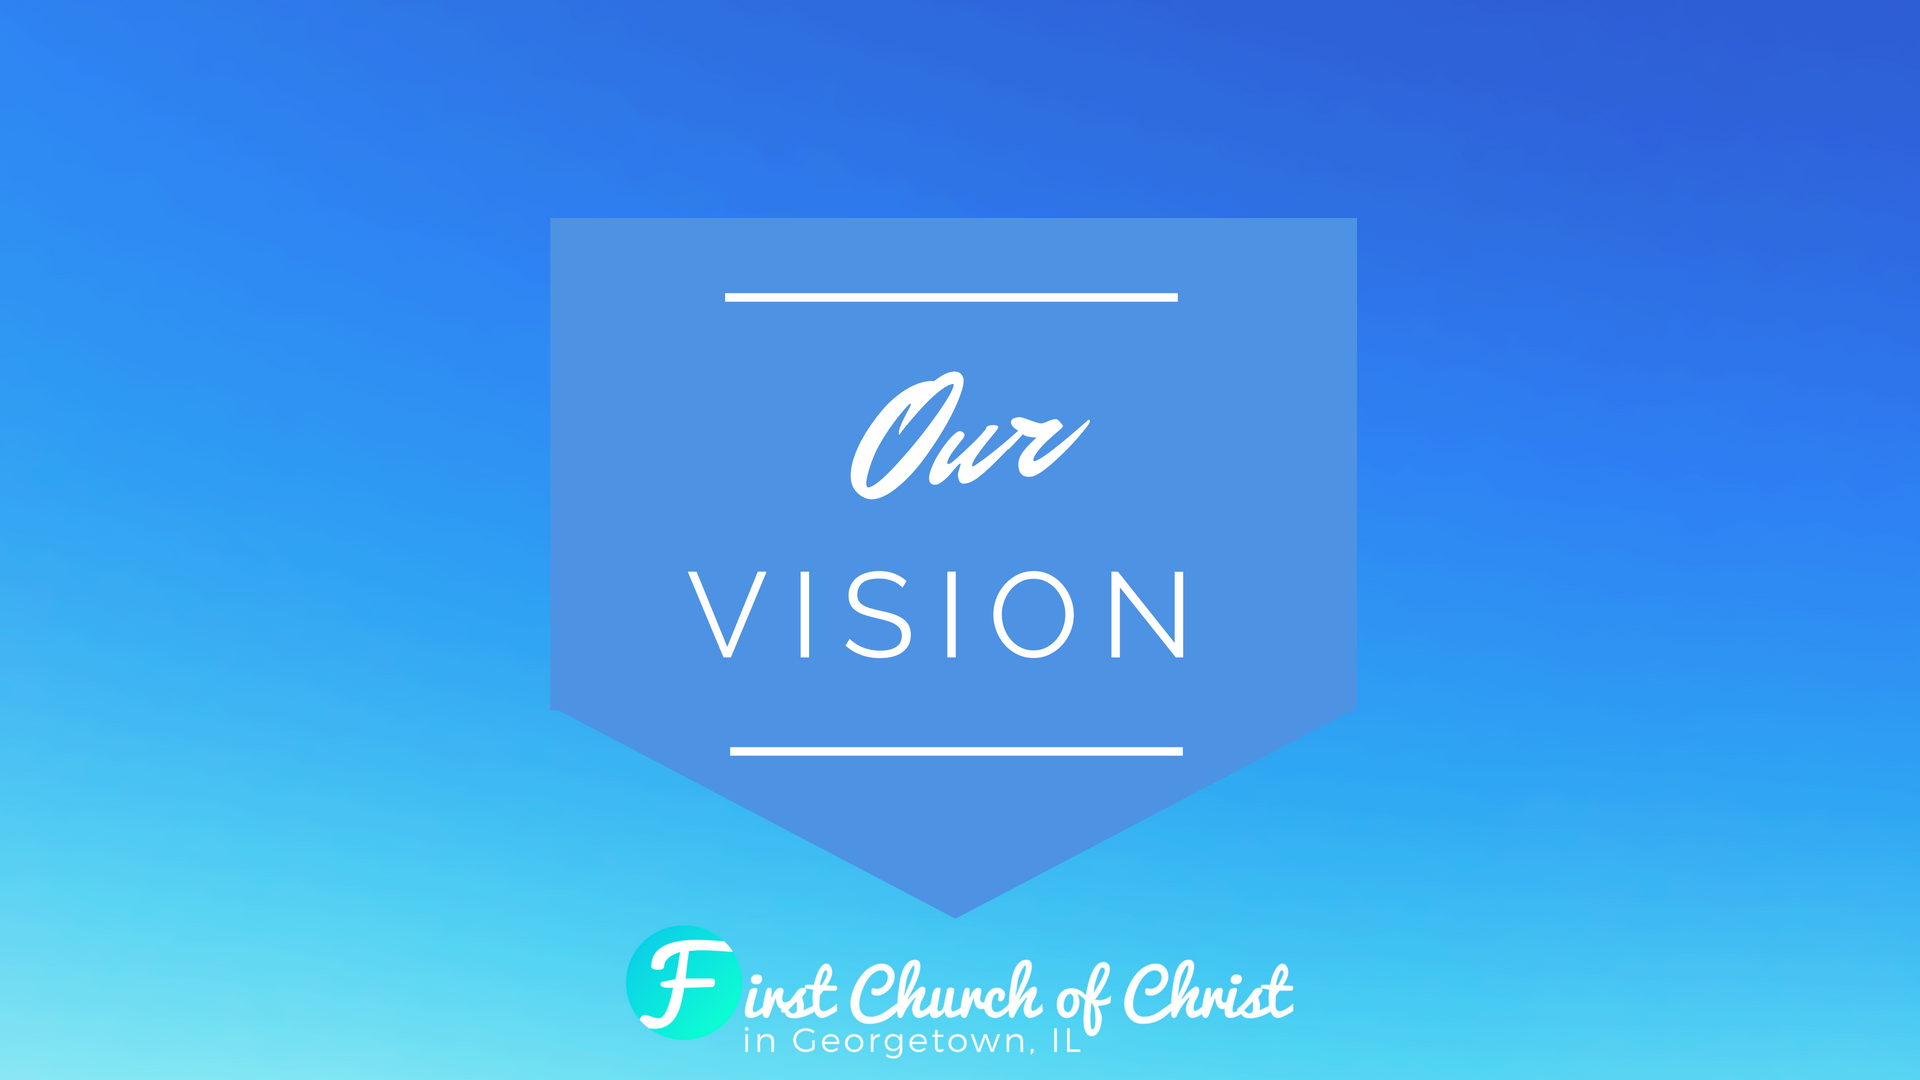 Our Vision 16x9 cover.jpg